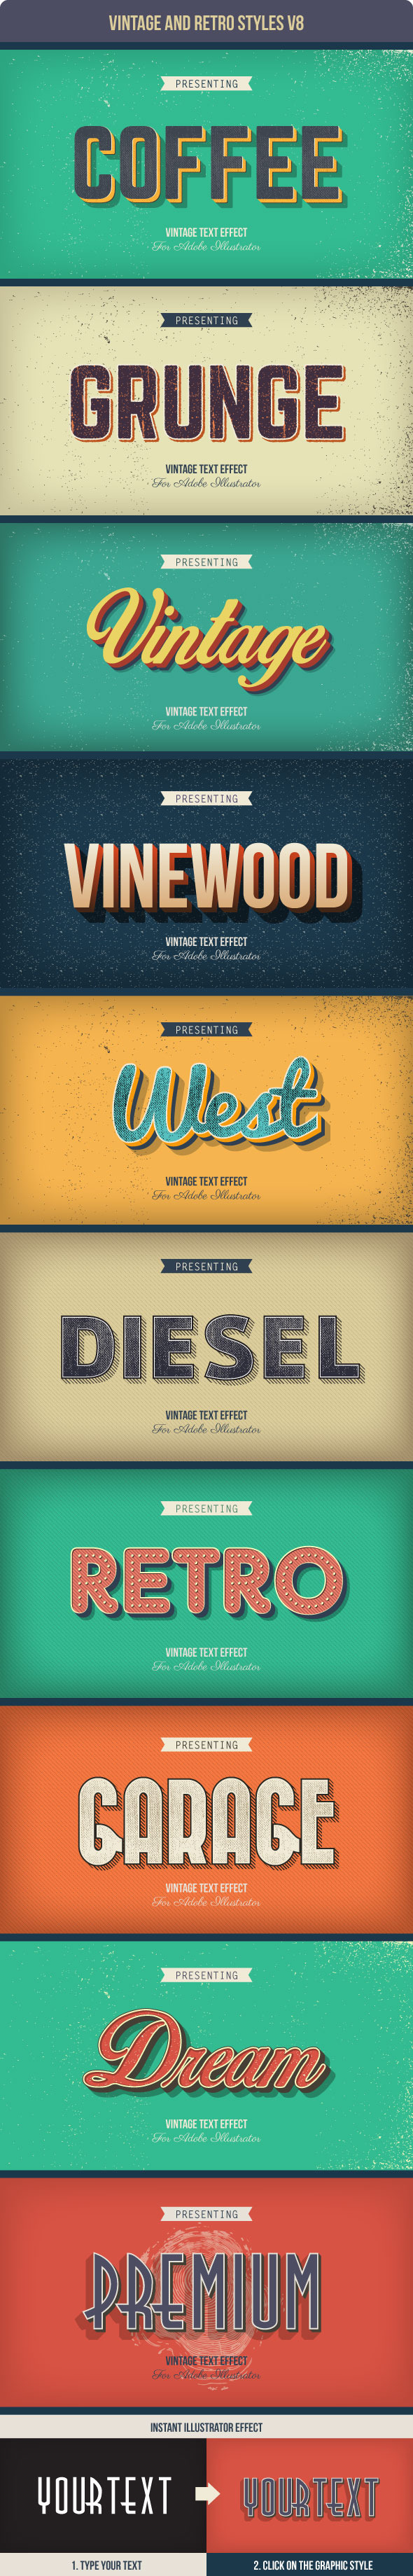 GraphicRiver Vintage and Retro Styles V8 10418986